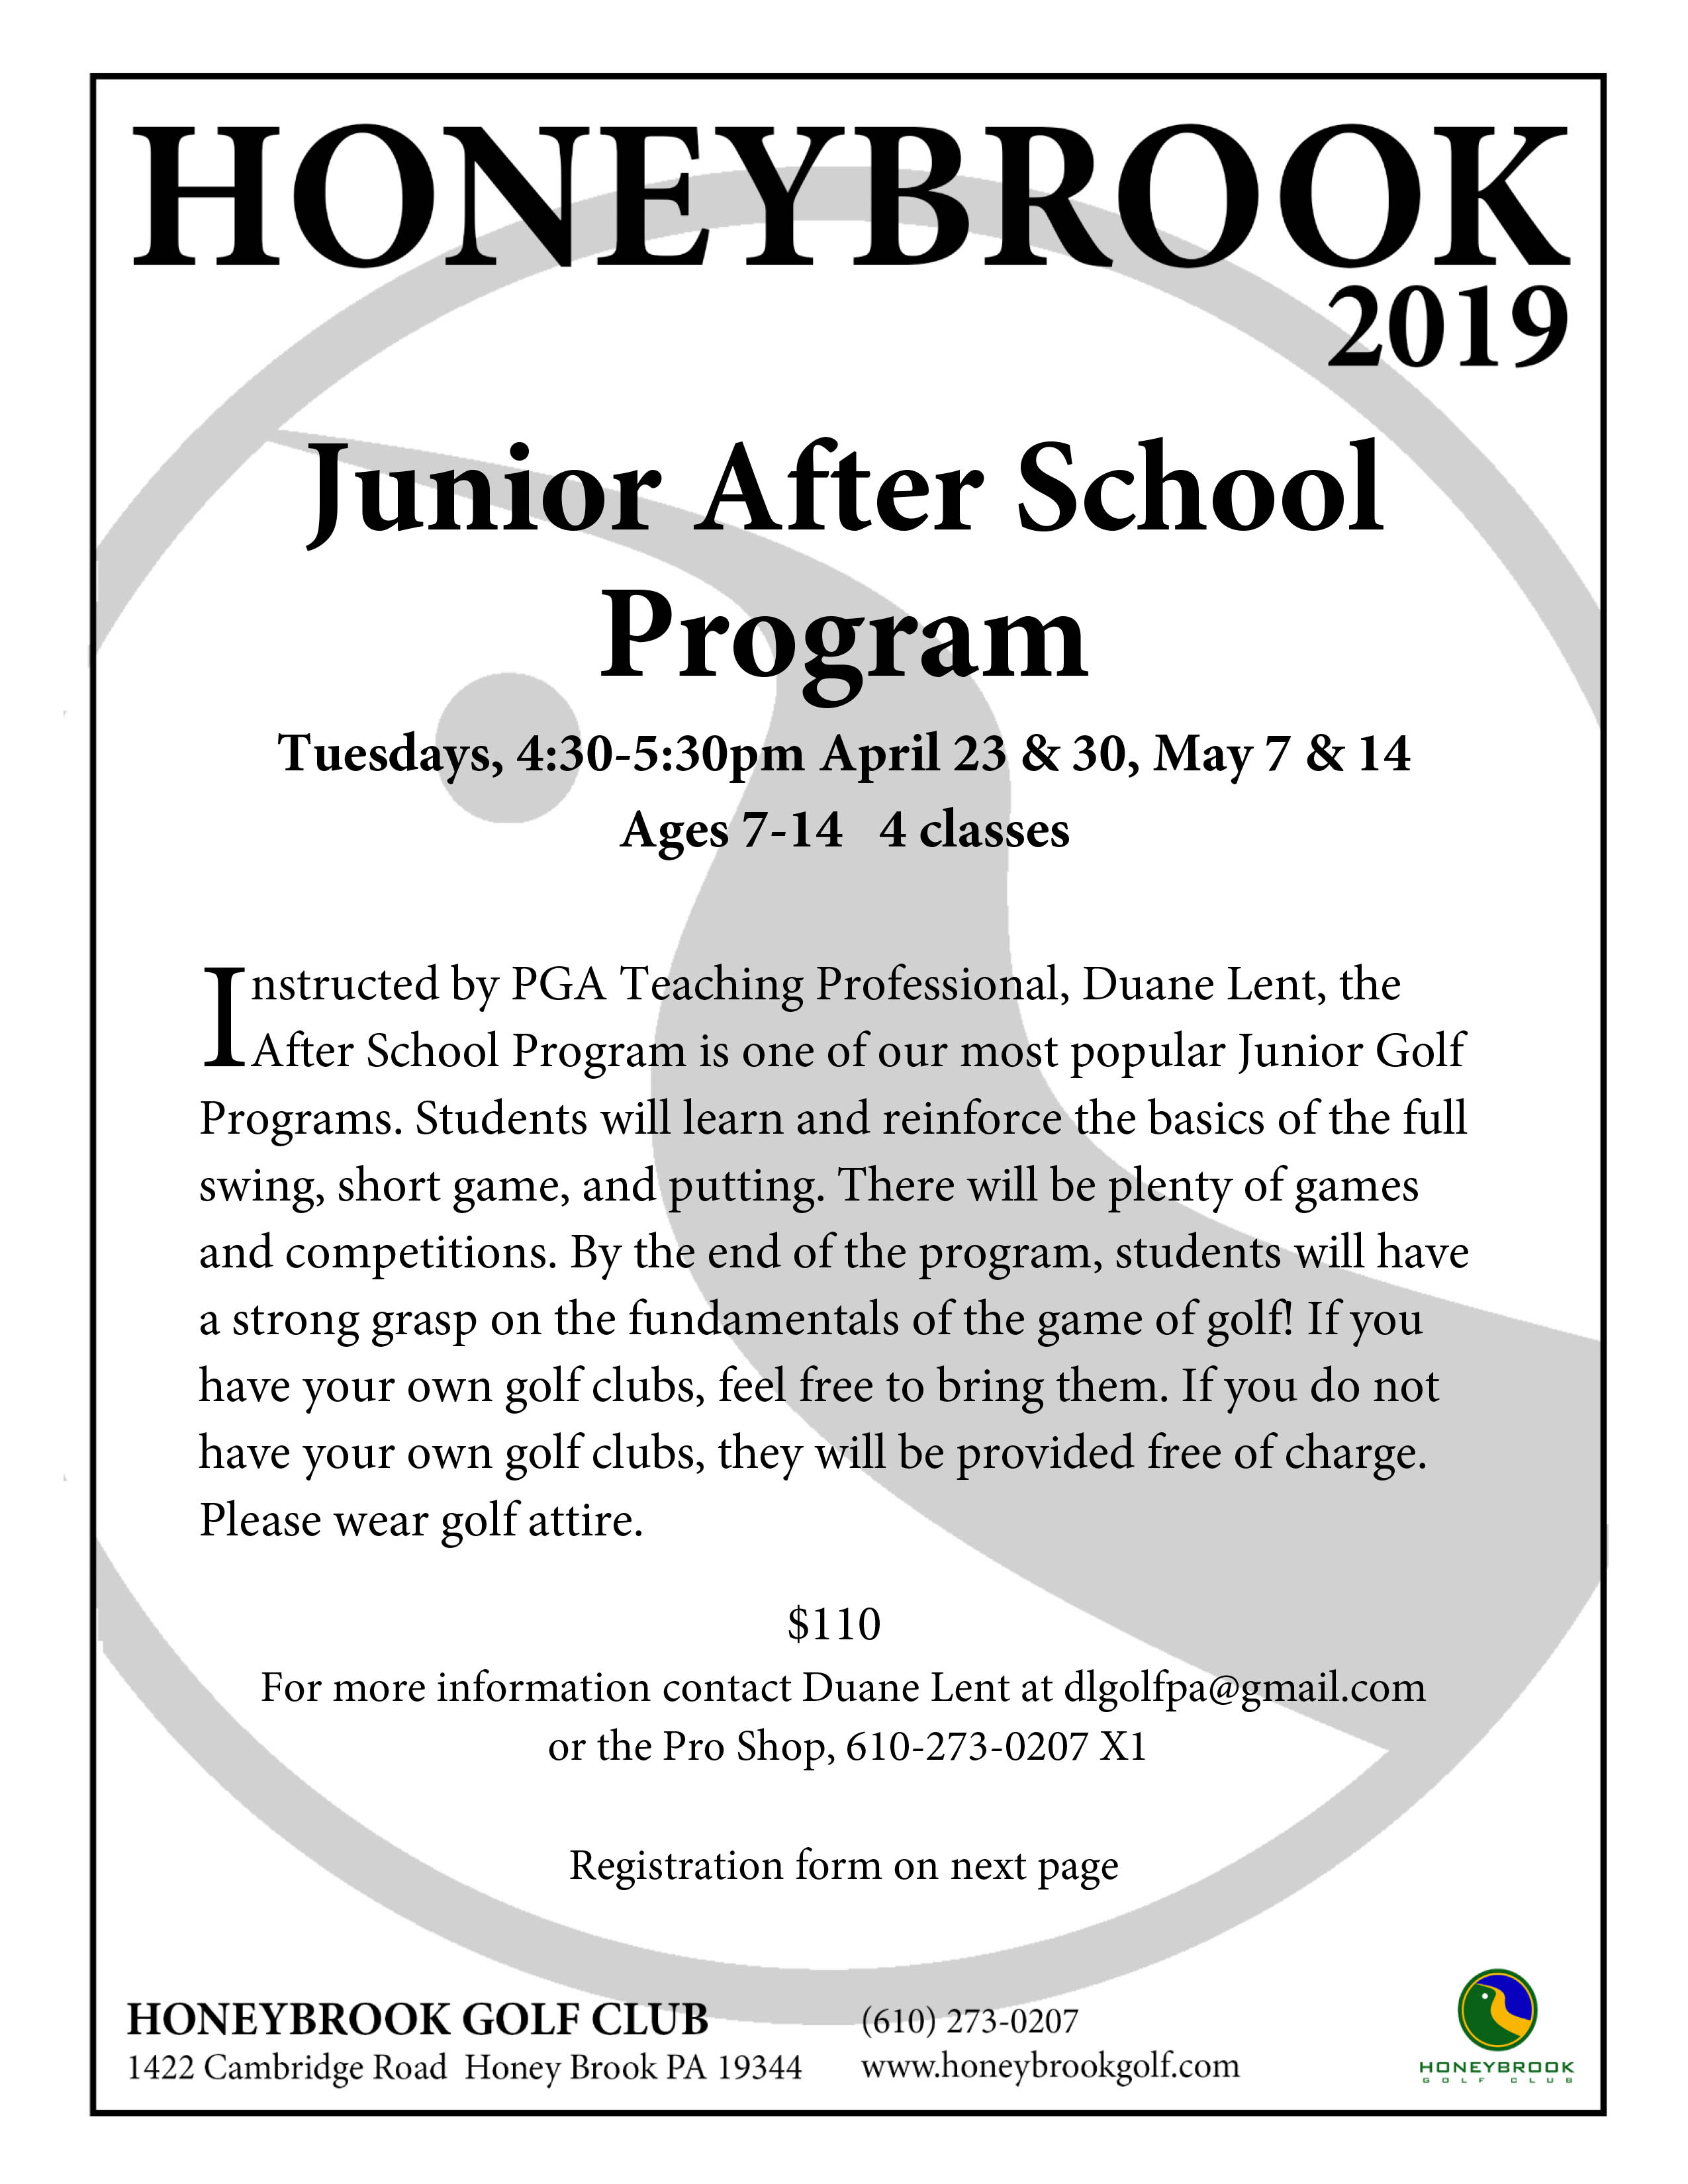 2019 Junior After School ProgramREV1 1